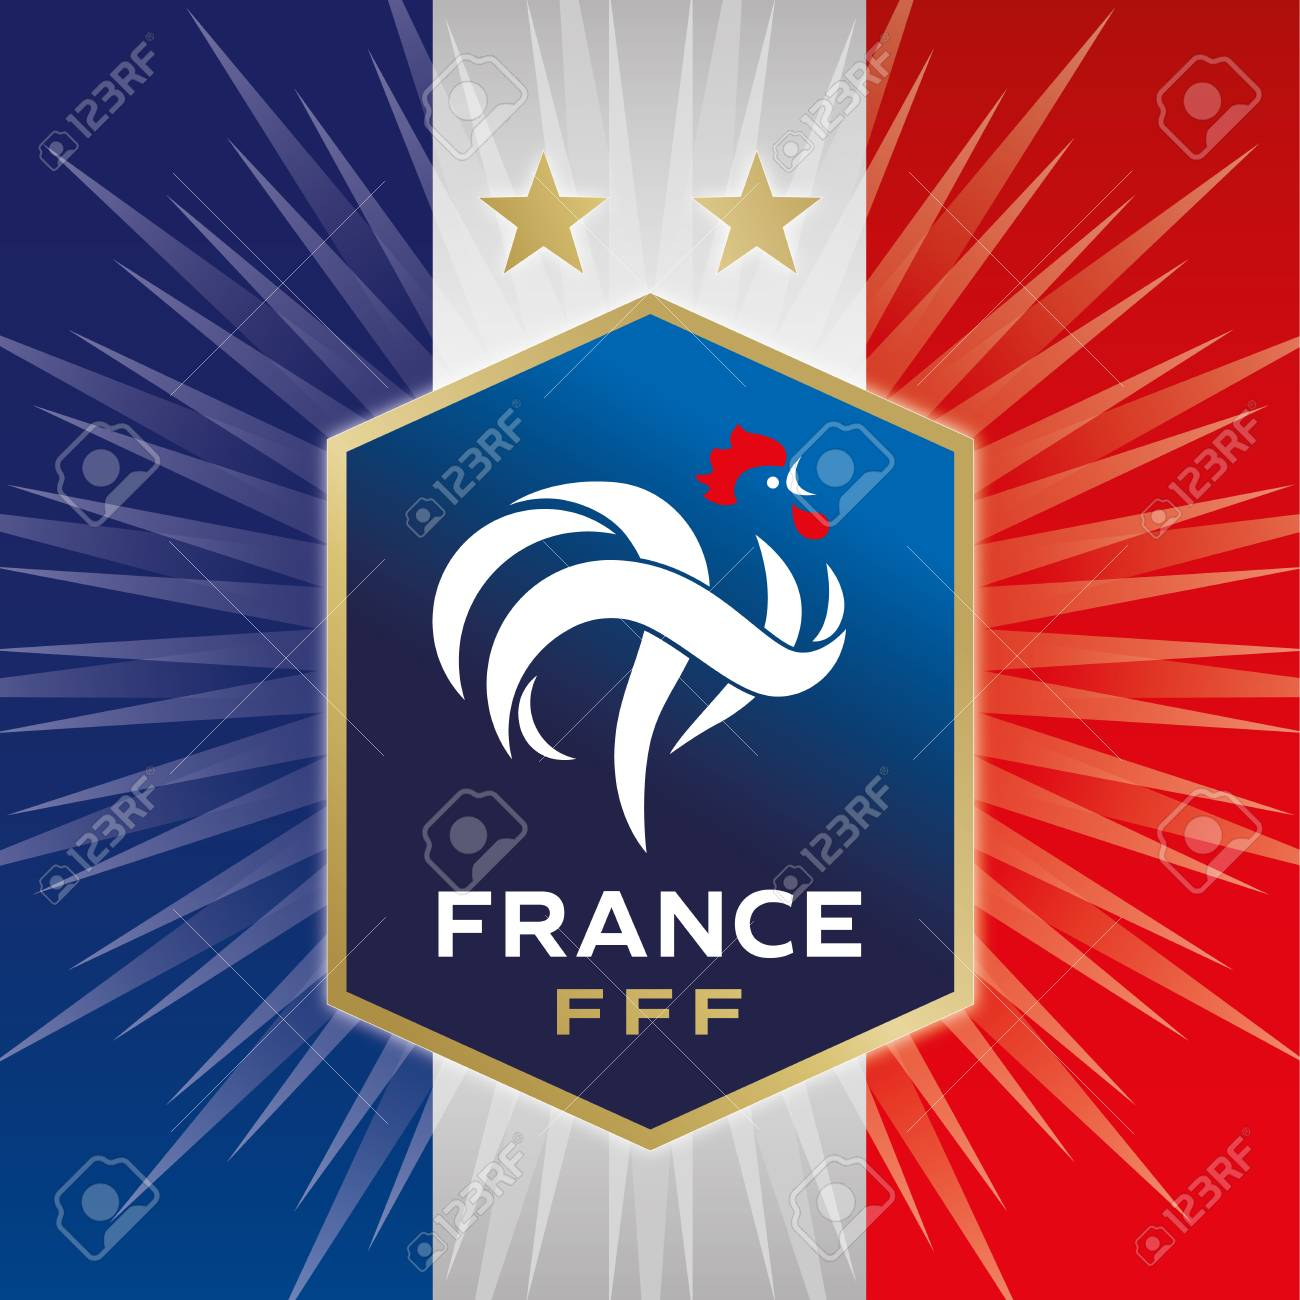 91acfbf60 France Football Federation logo with two stars and flag, editorial,  illustration Stock Photo -